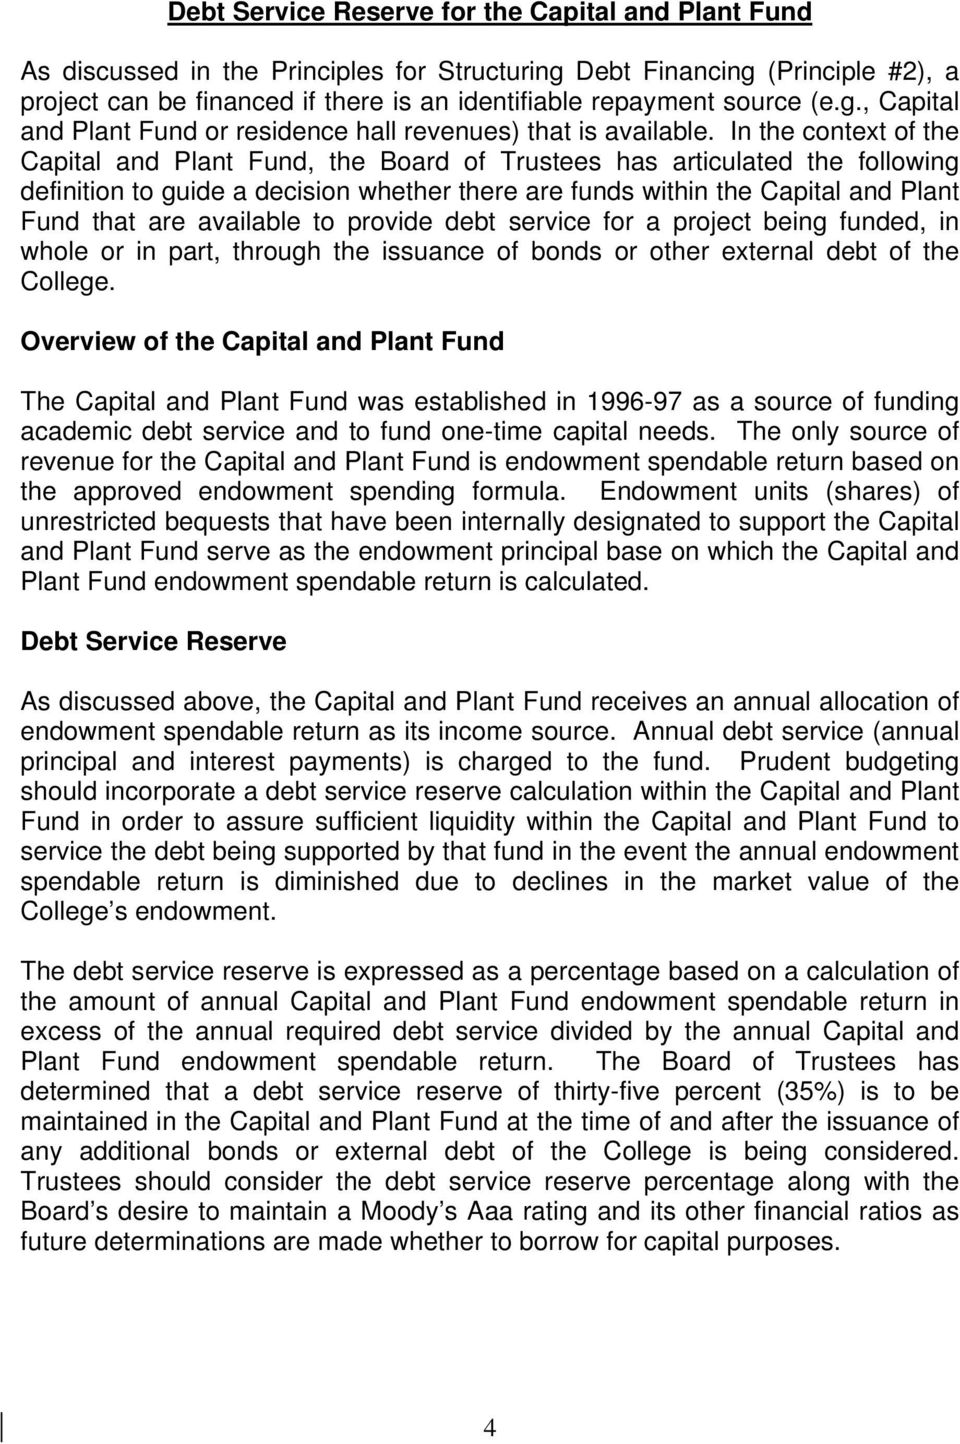 In the context of the Capital and Plant Fund, the Board of Trustees has articulated the following definition to guide a decision whether there are funds within the Capital and Plant Fund that are